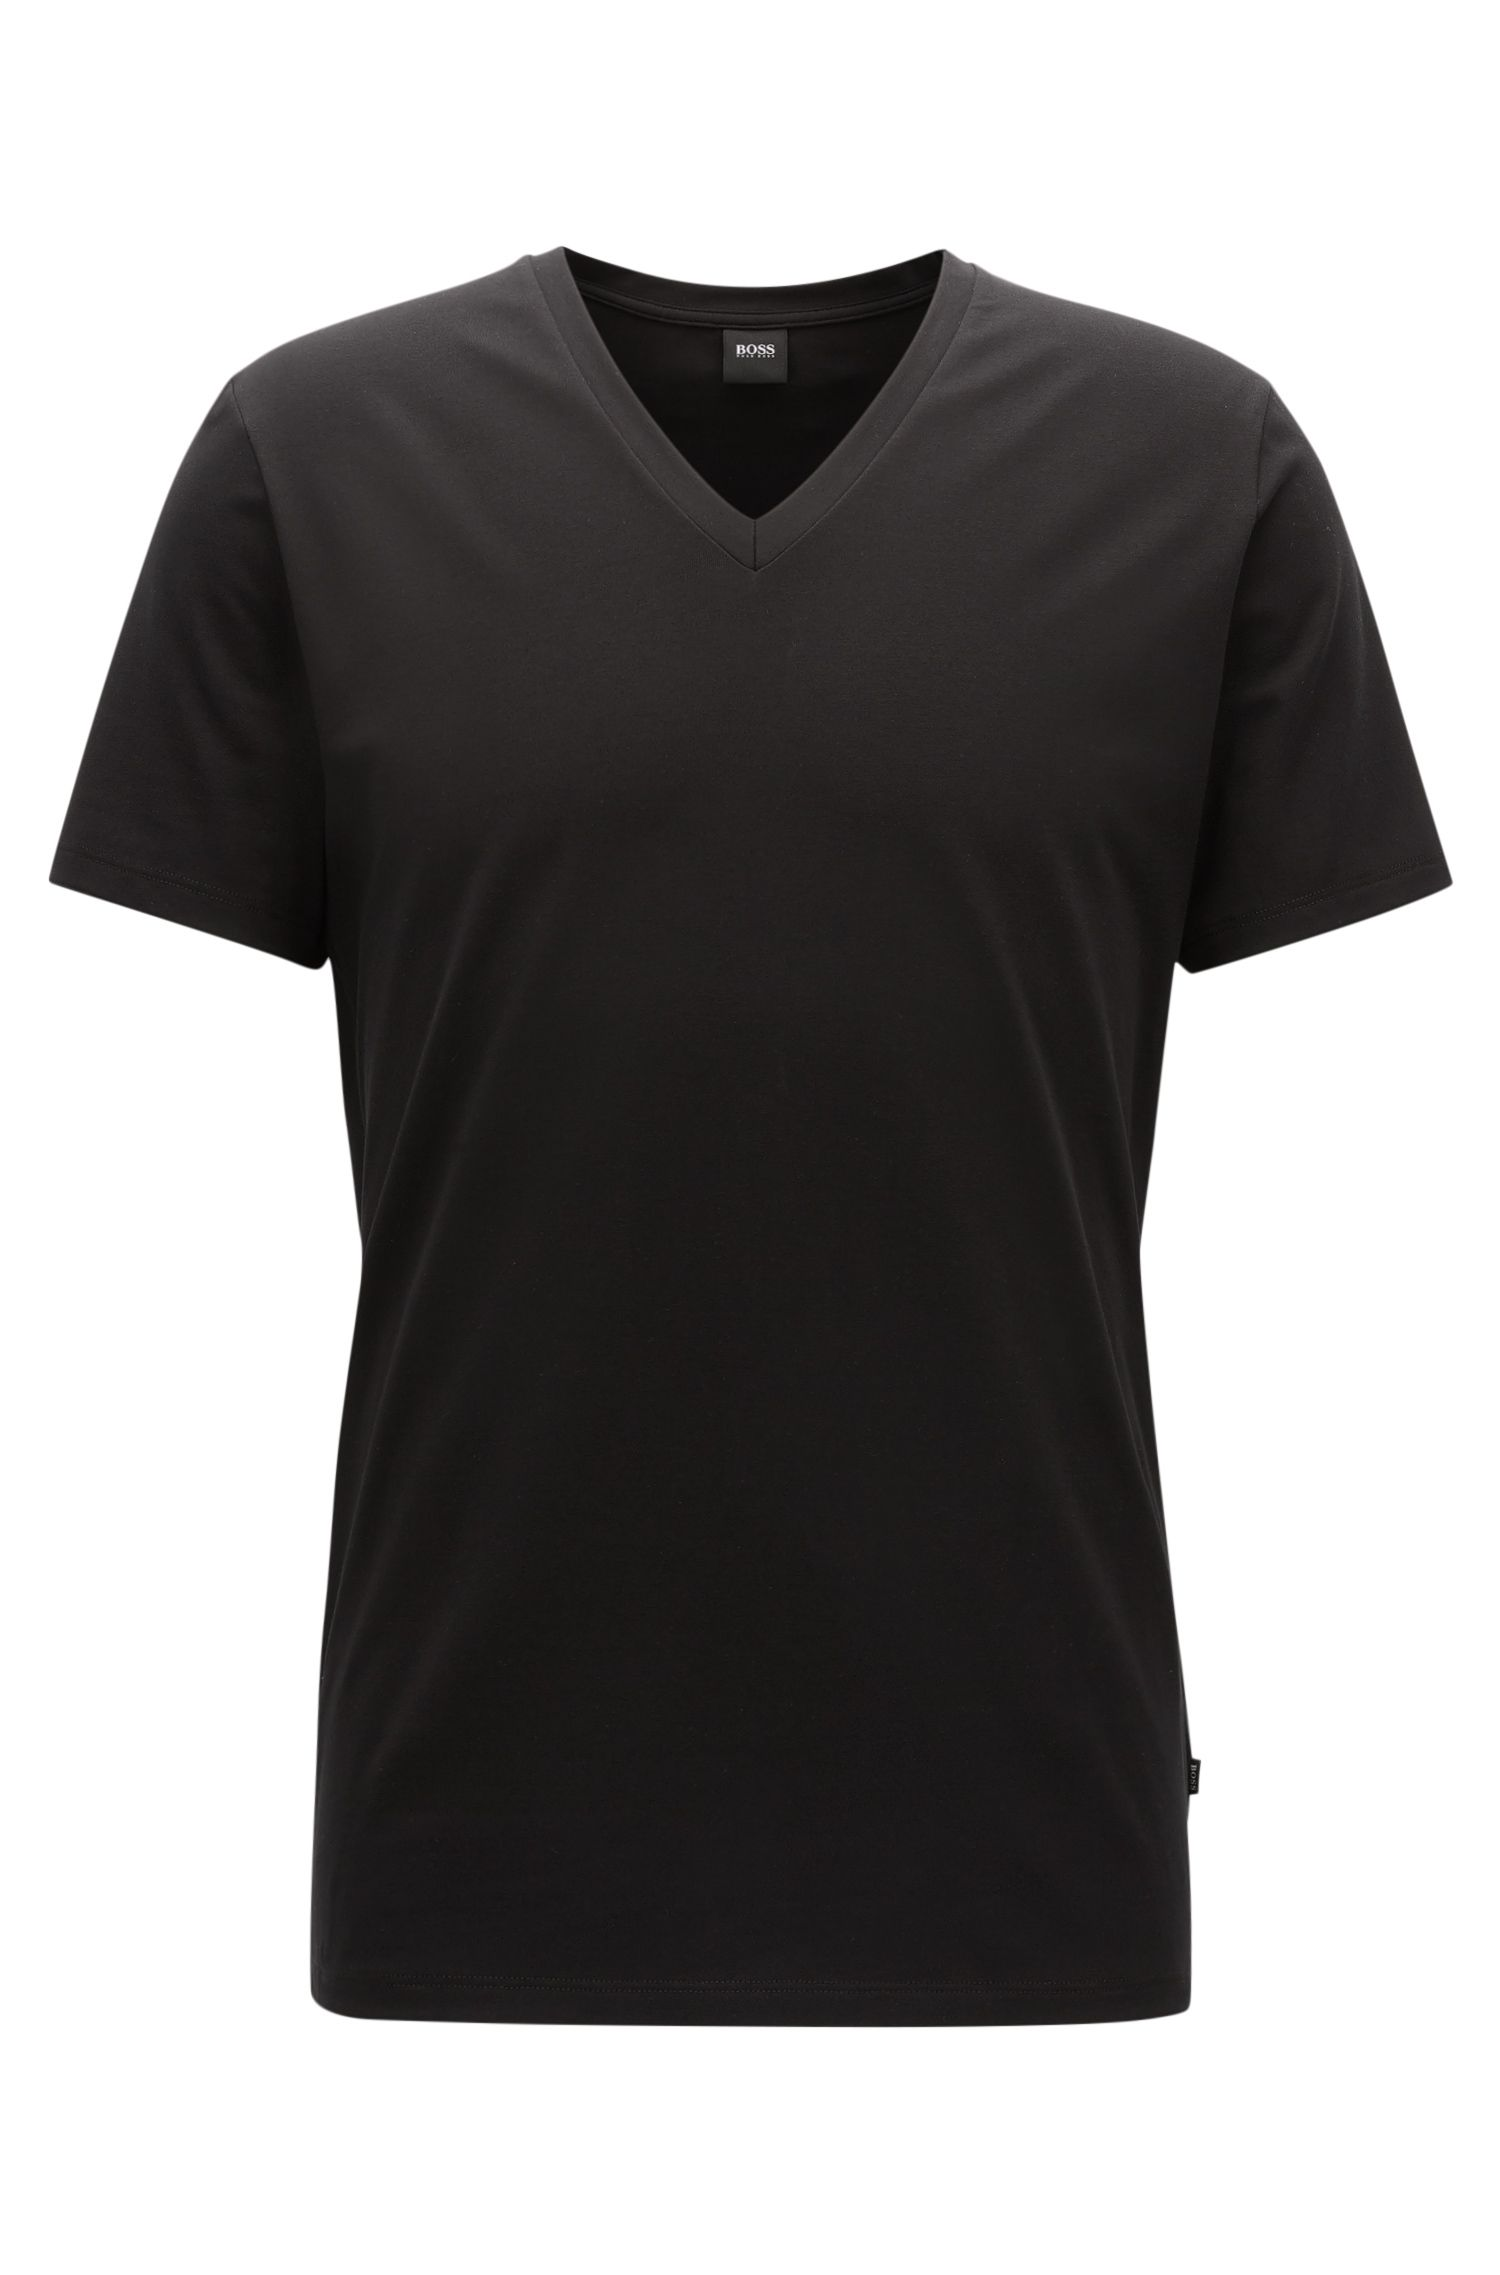 V-neck underwear T-shirt in Egyptian stretch cotton